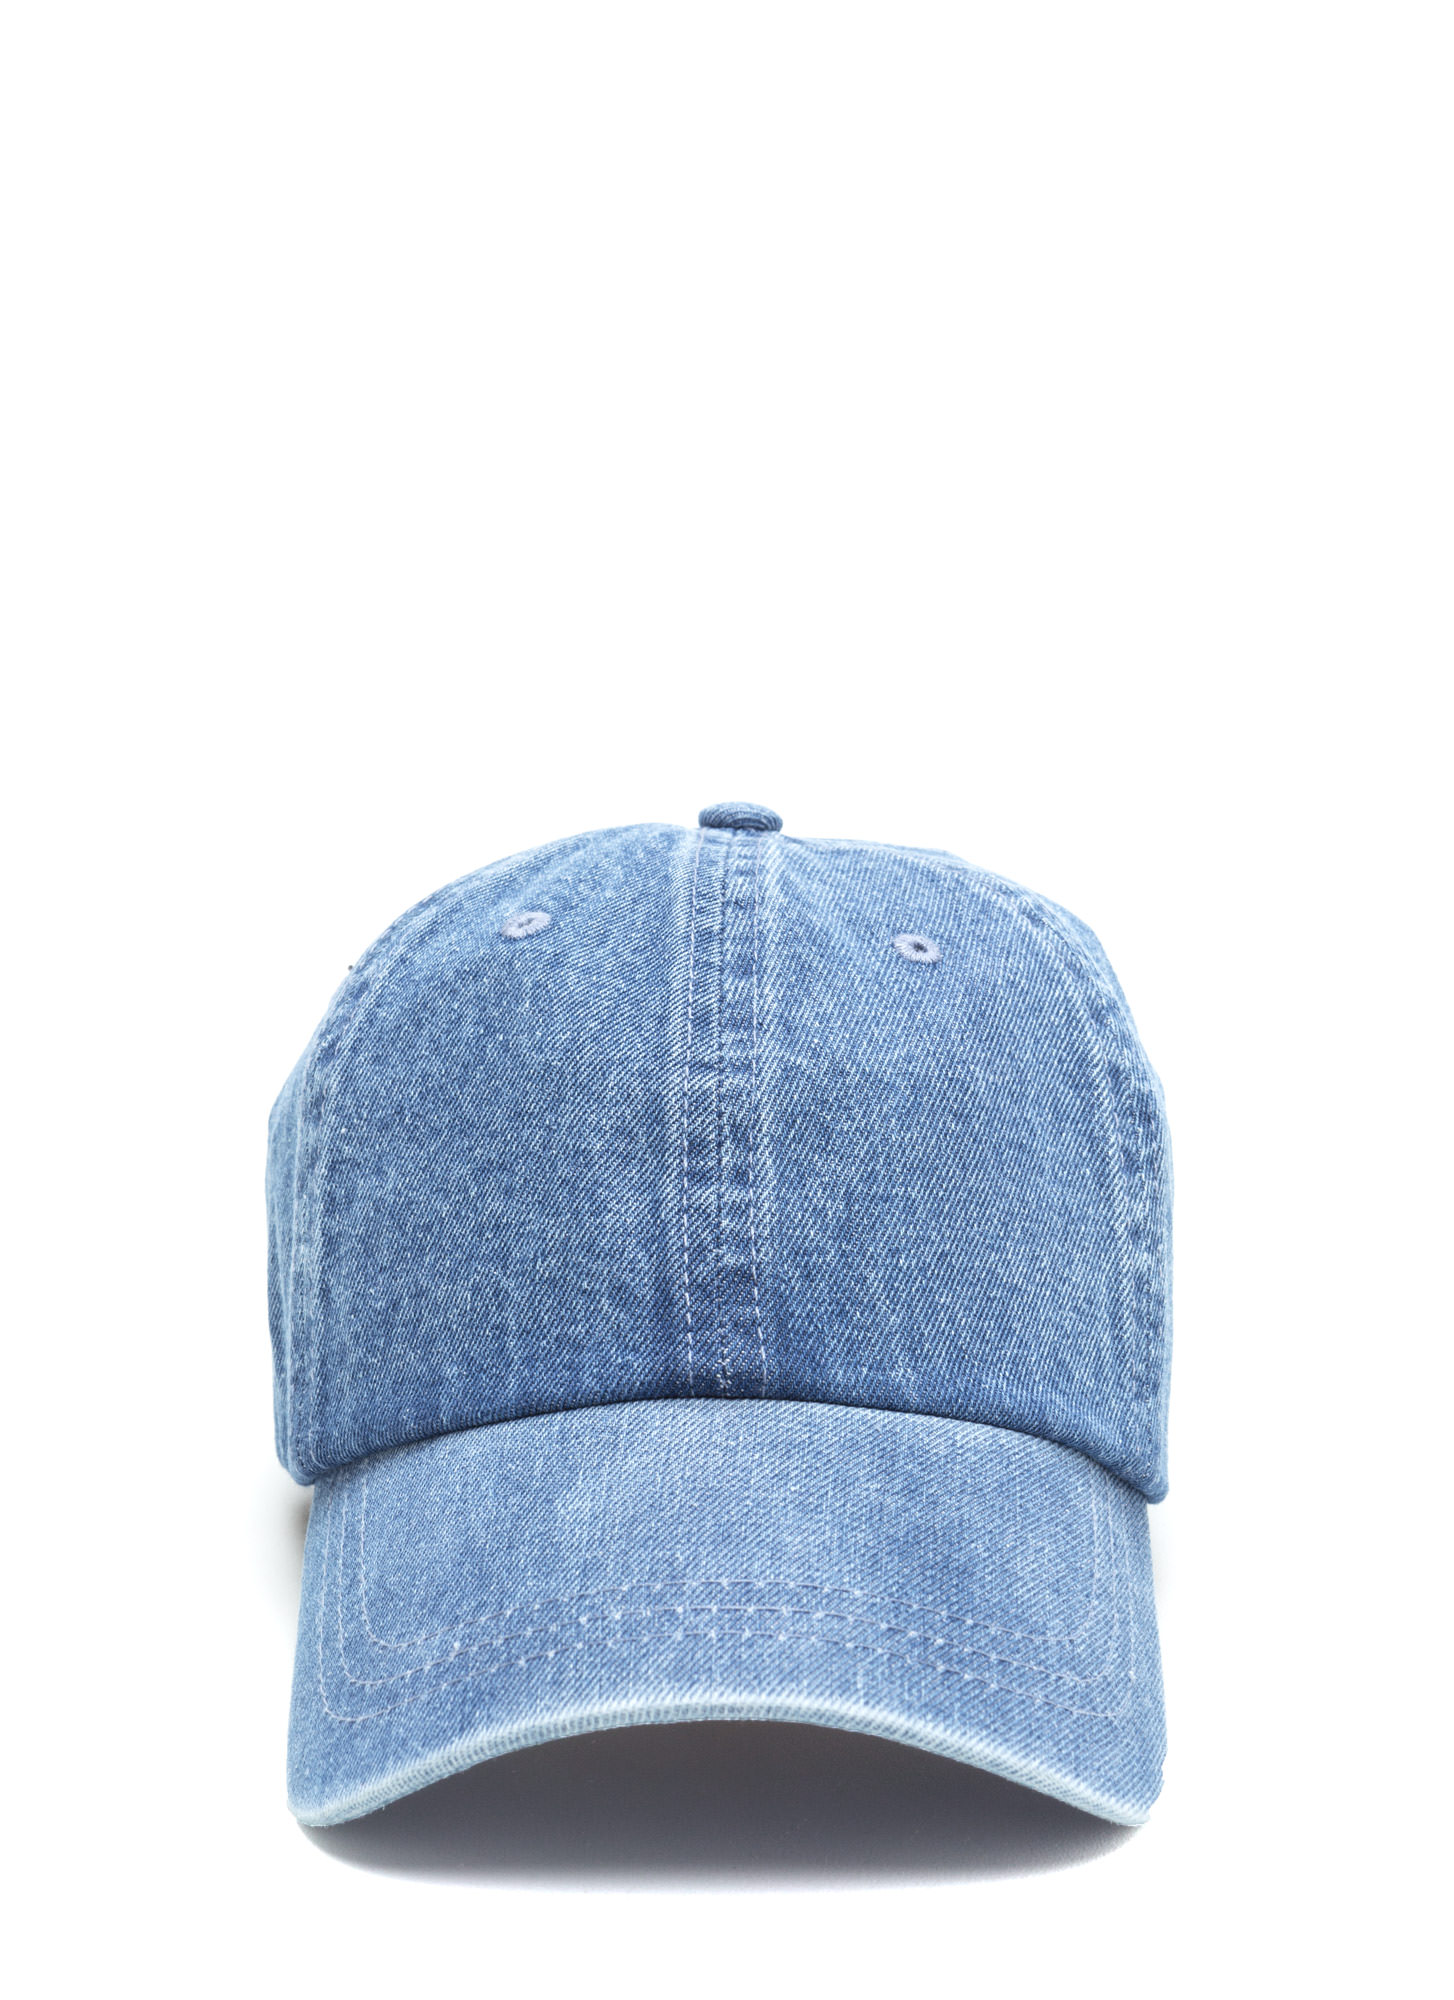 Denim All Day Every Day Baseball Cap LTBLUE